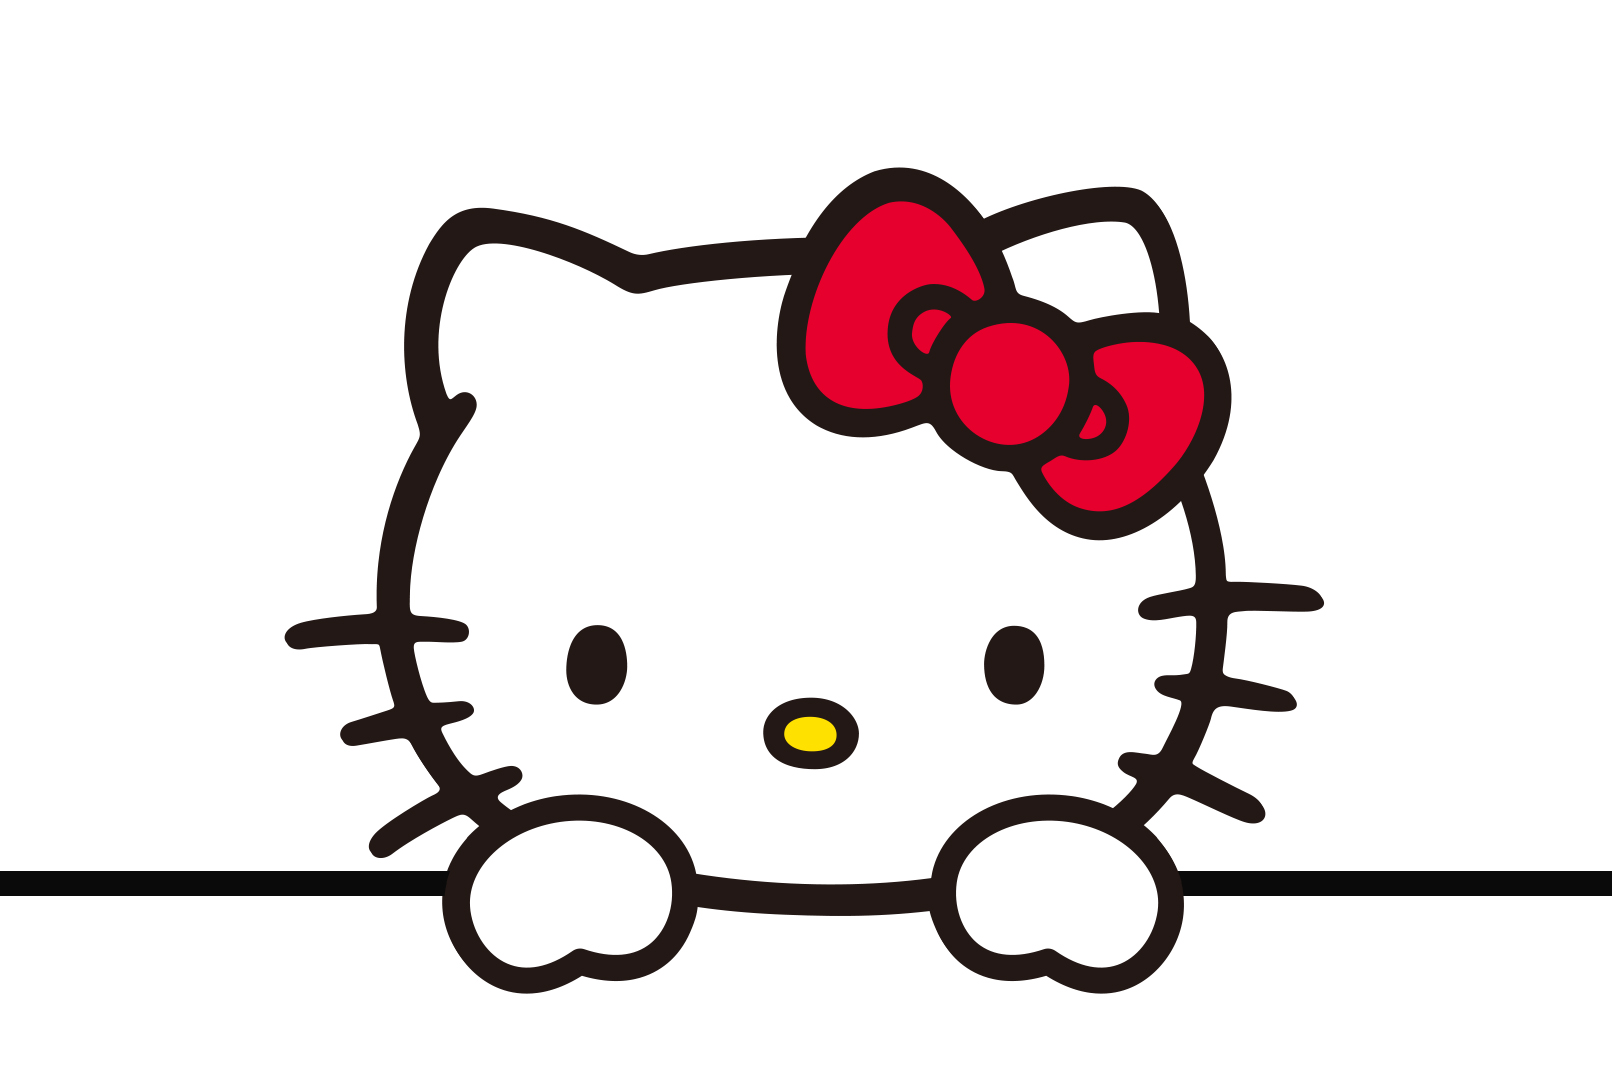 HELLO KITTY. The adorable feline character will soon star in a Hollywood film. Image courtesy of Warner Bros Pictures